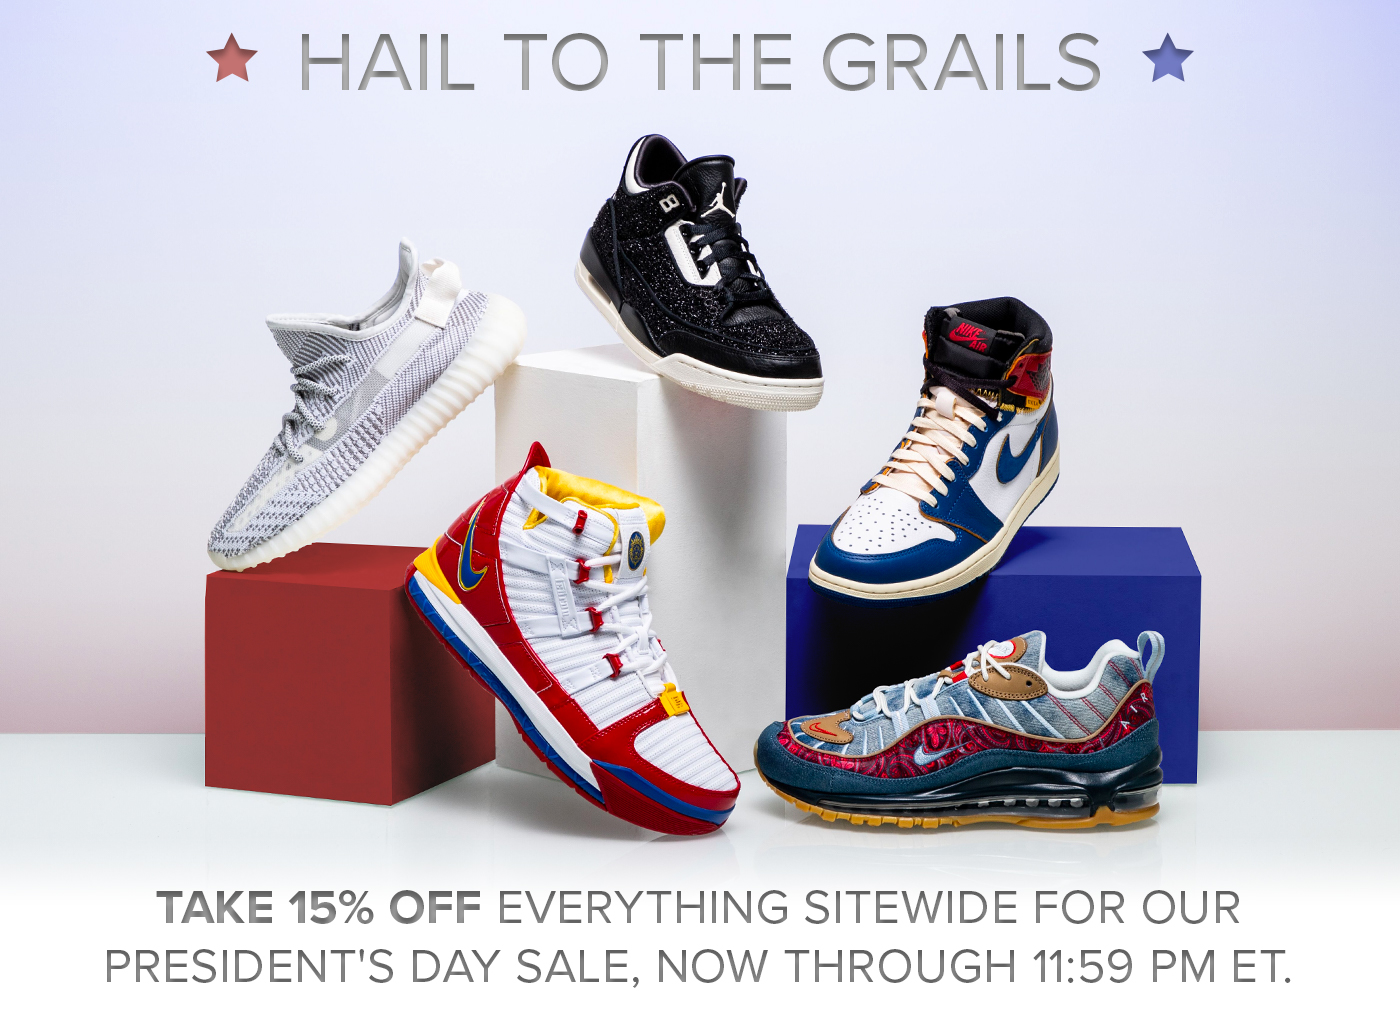 ceb95a7e359 Stadium Goods  Enjoy 15% off everything today only!